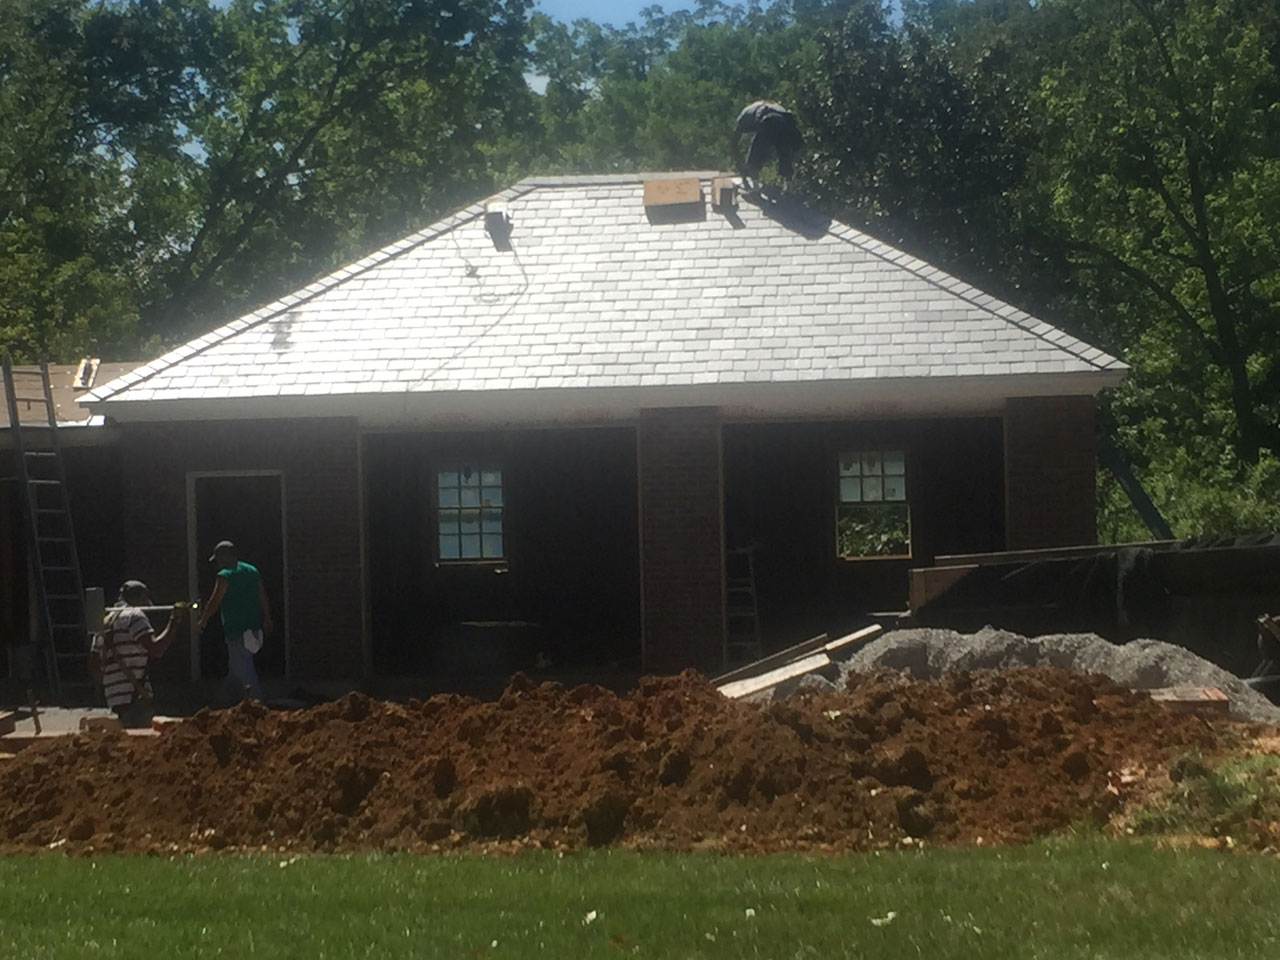 A Vermont Slate Roof Was By Carlon Roofing To Match The Existing On House